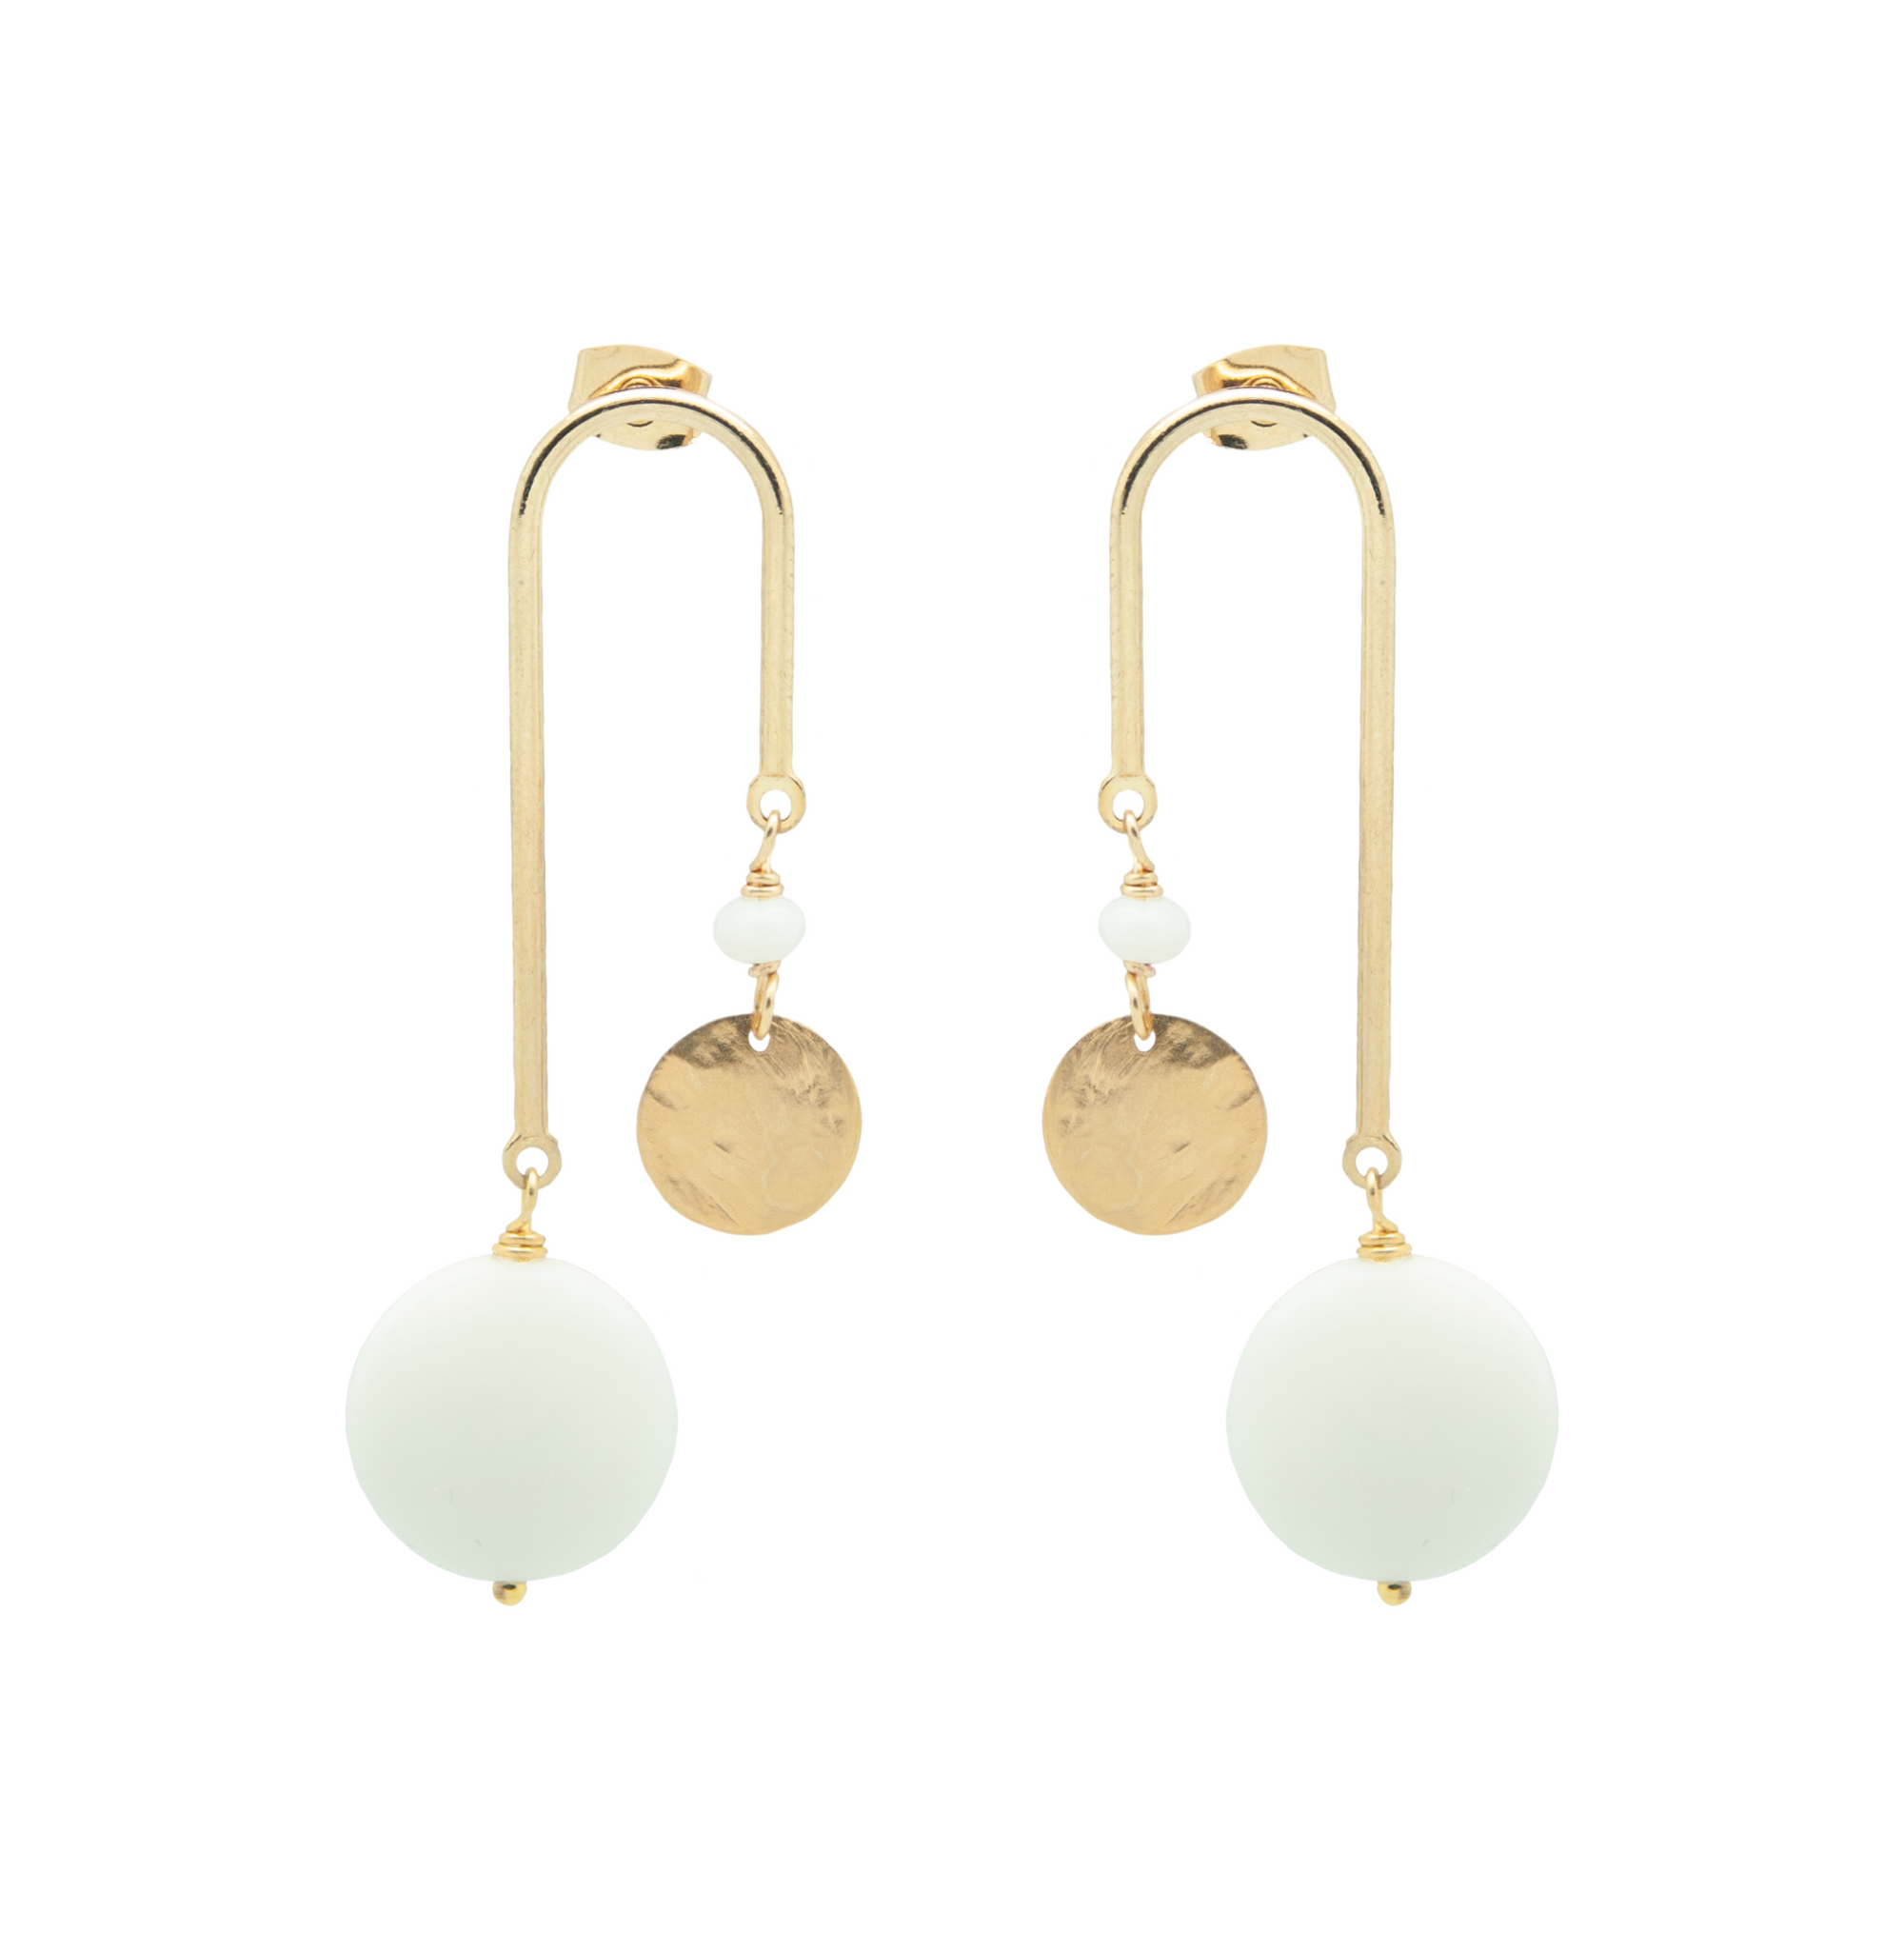 curve earrings in glossy gold with white recycled glass drops on white background